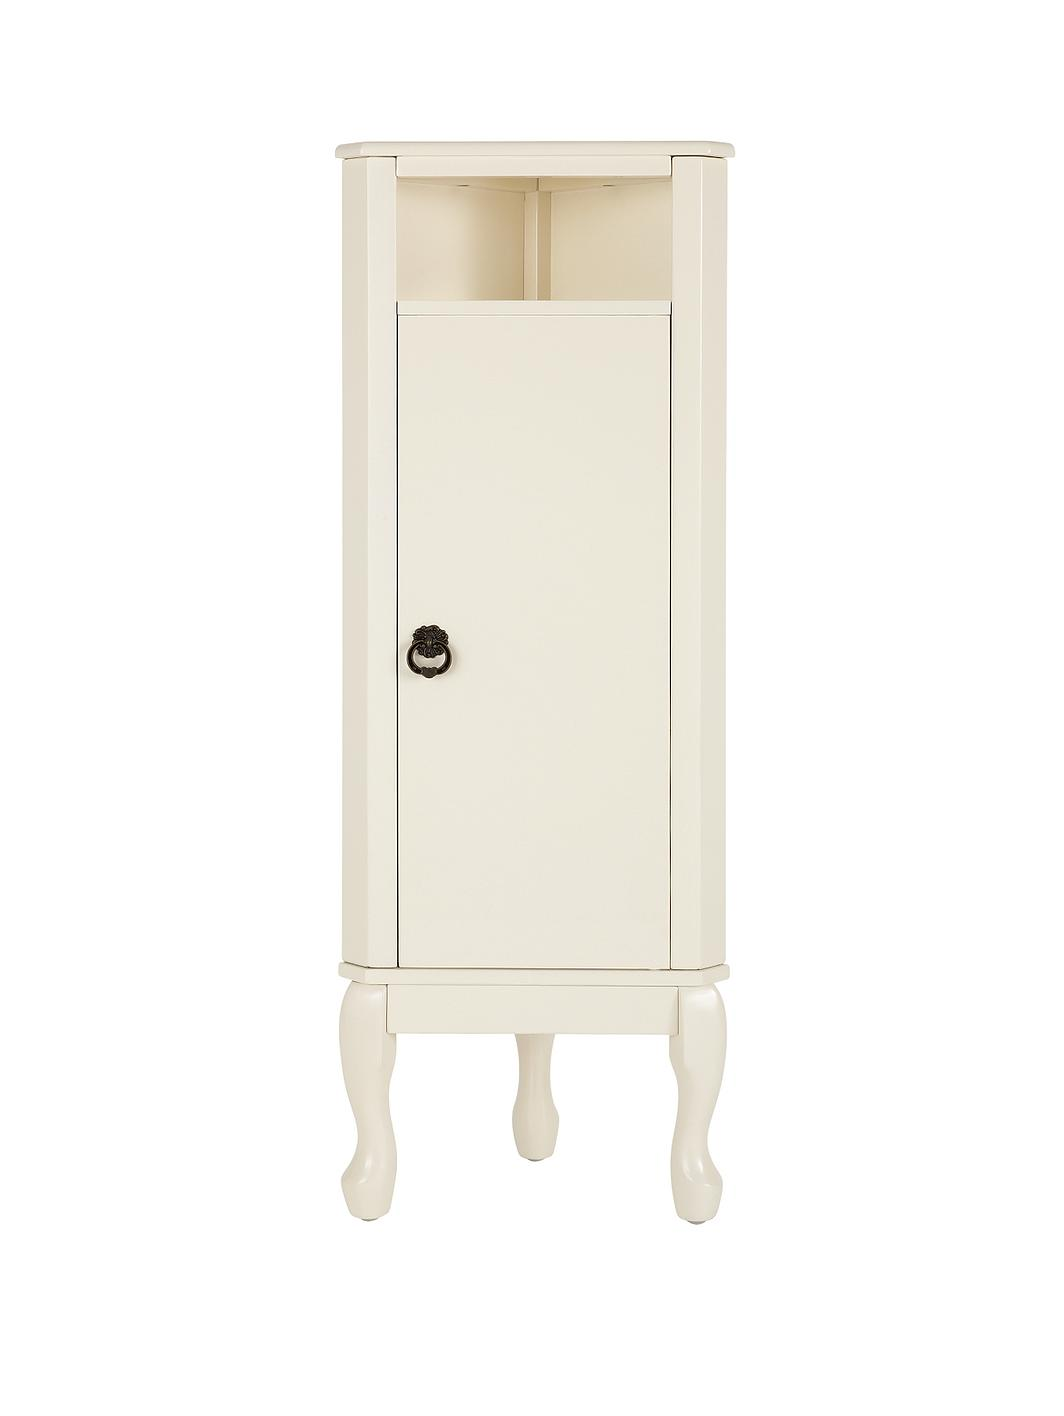 elysee corner bathroom floor cabinet unit